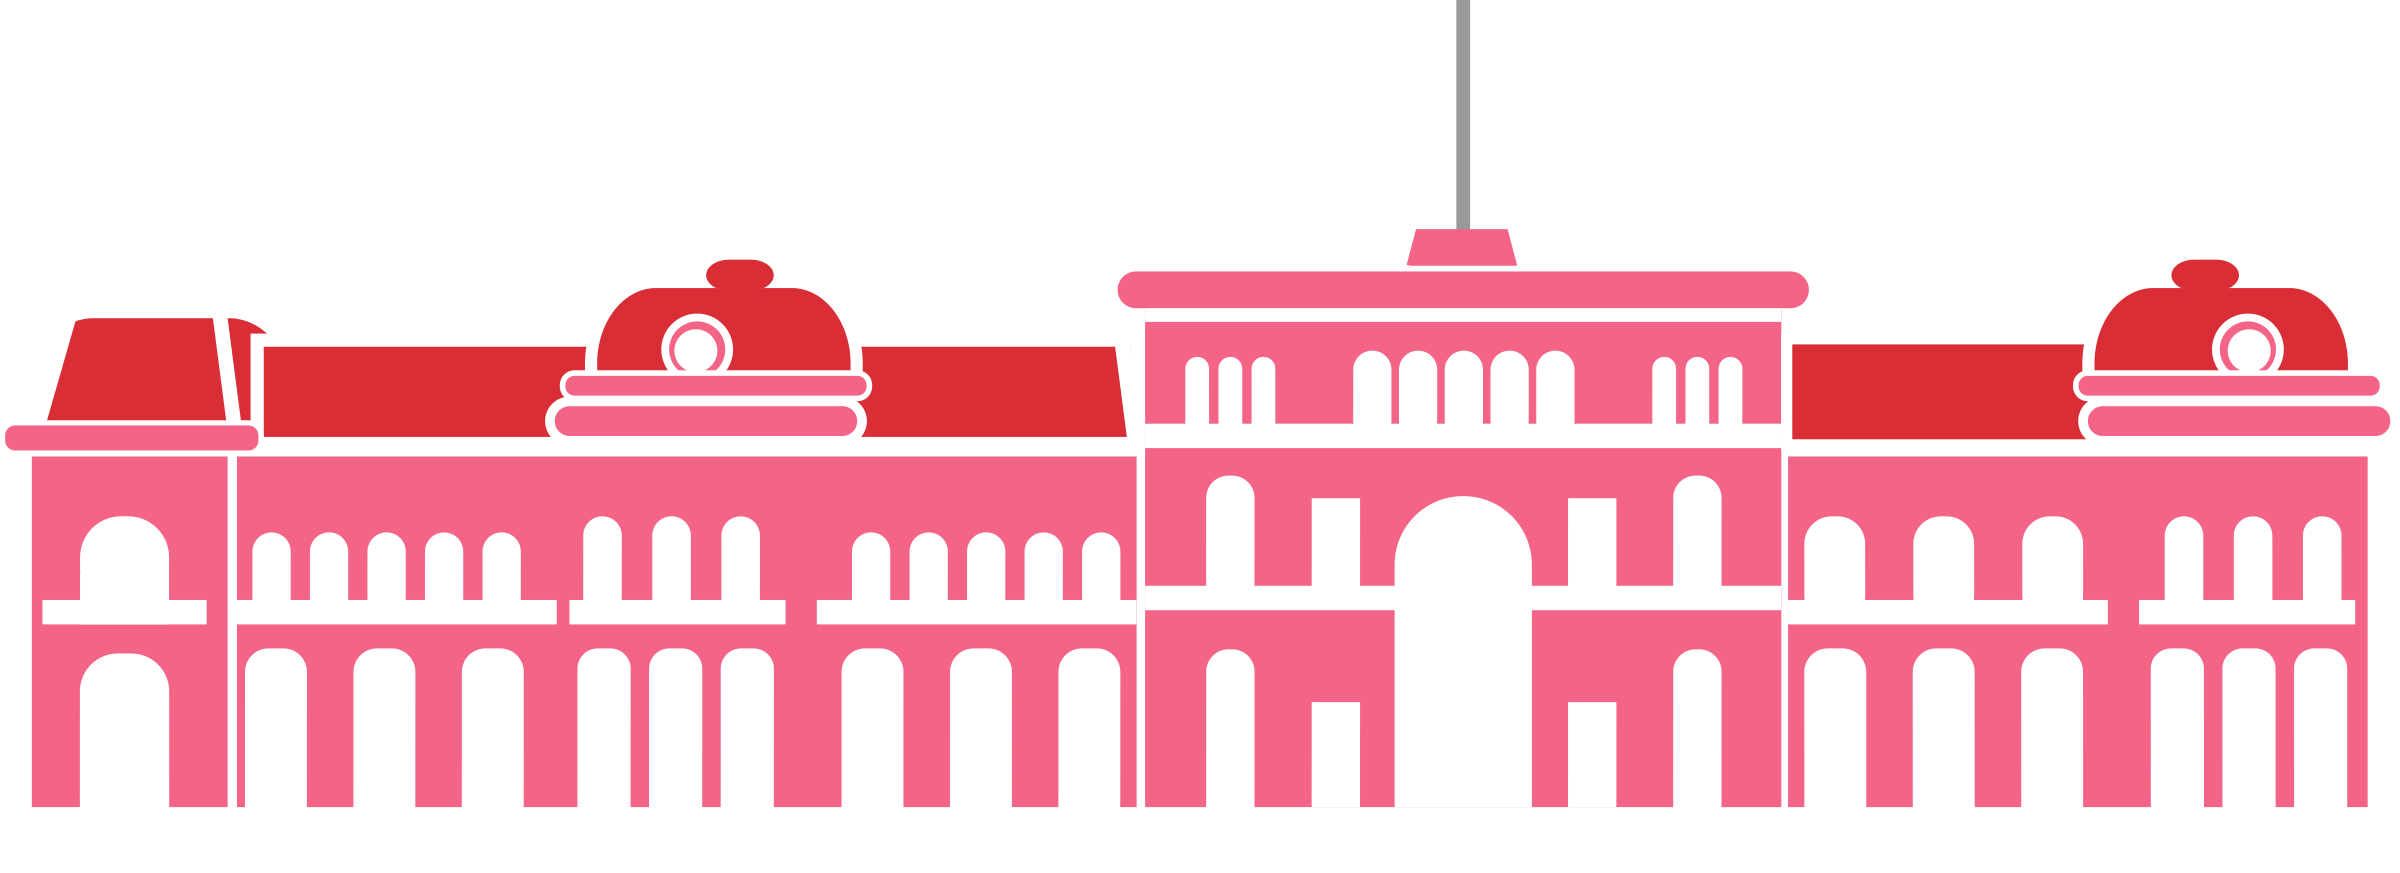 File:Casa Rosada clipart.png - Wikimedia Commons